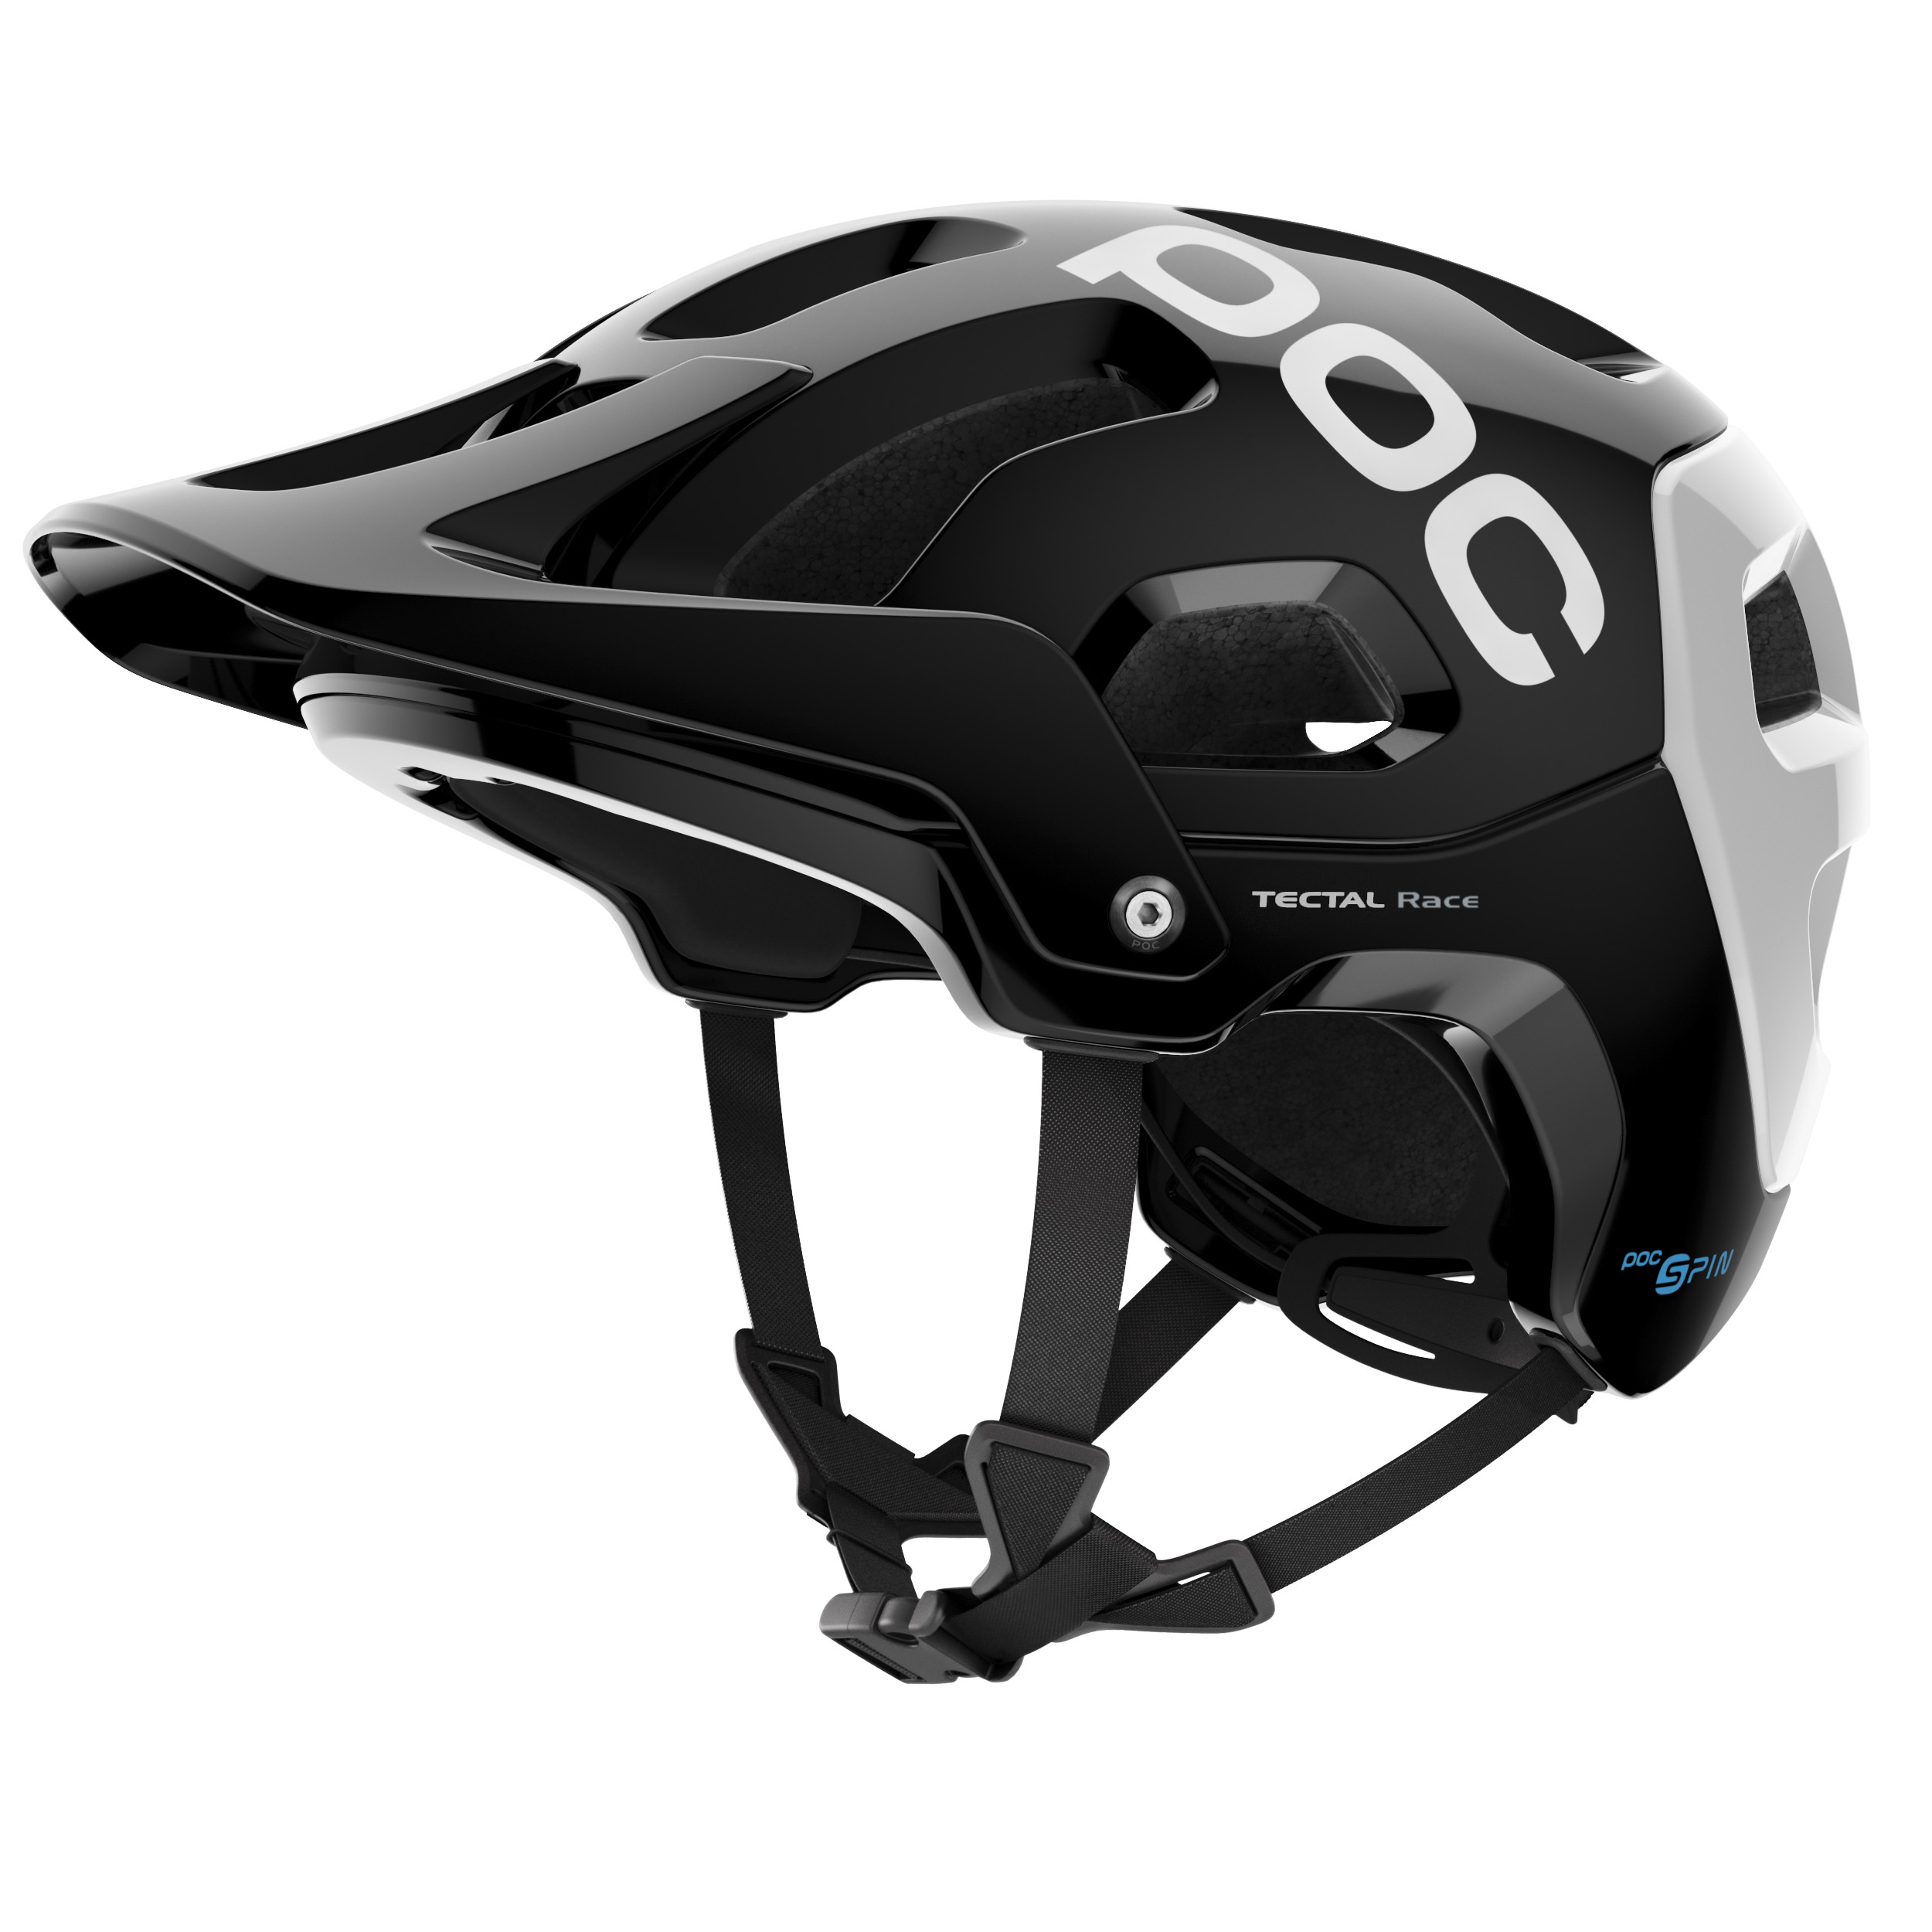 TECTAL RACE SPIN - The Tectal Race is a well-ventilated helmet that has been specifically developed for aggressive trail riding and enduro racing.